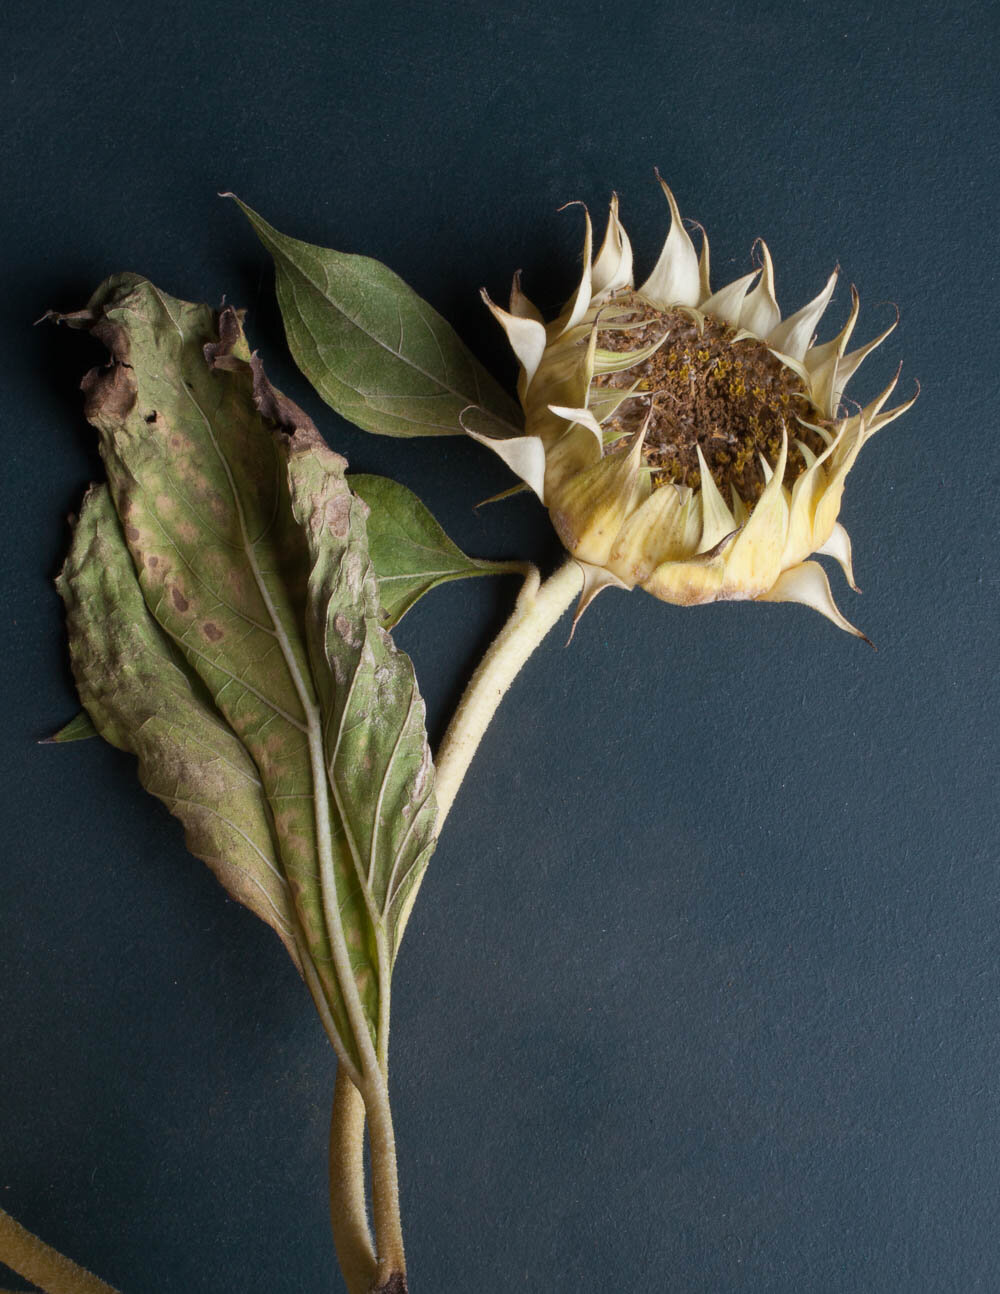 Photograph of fading / decaying sunflower on a dark blue green background